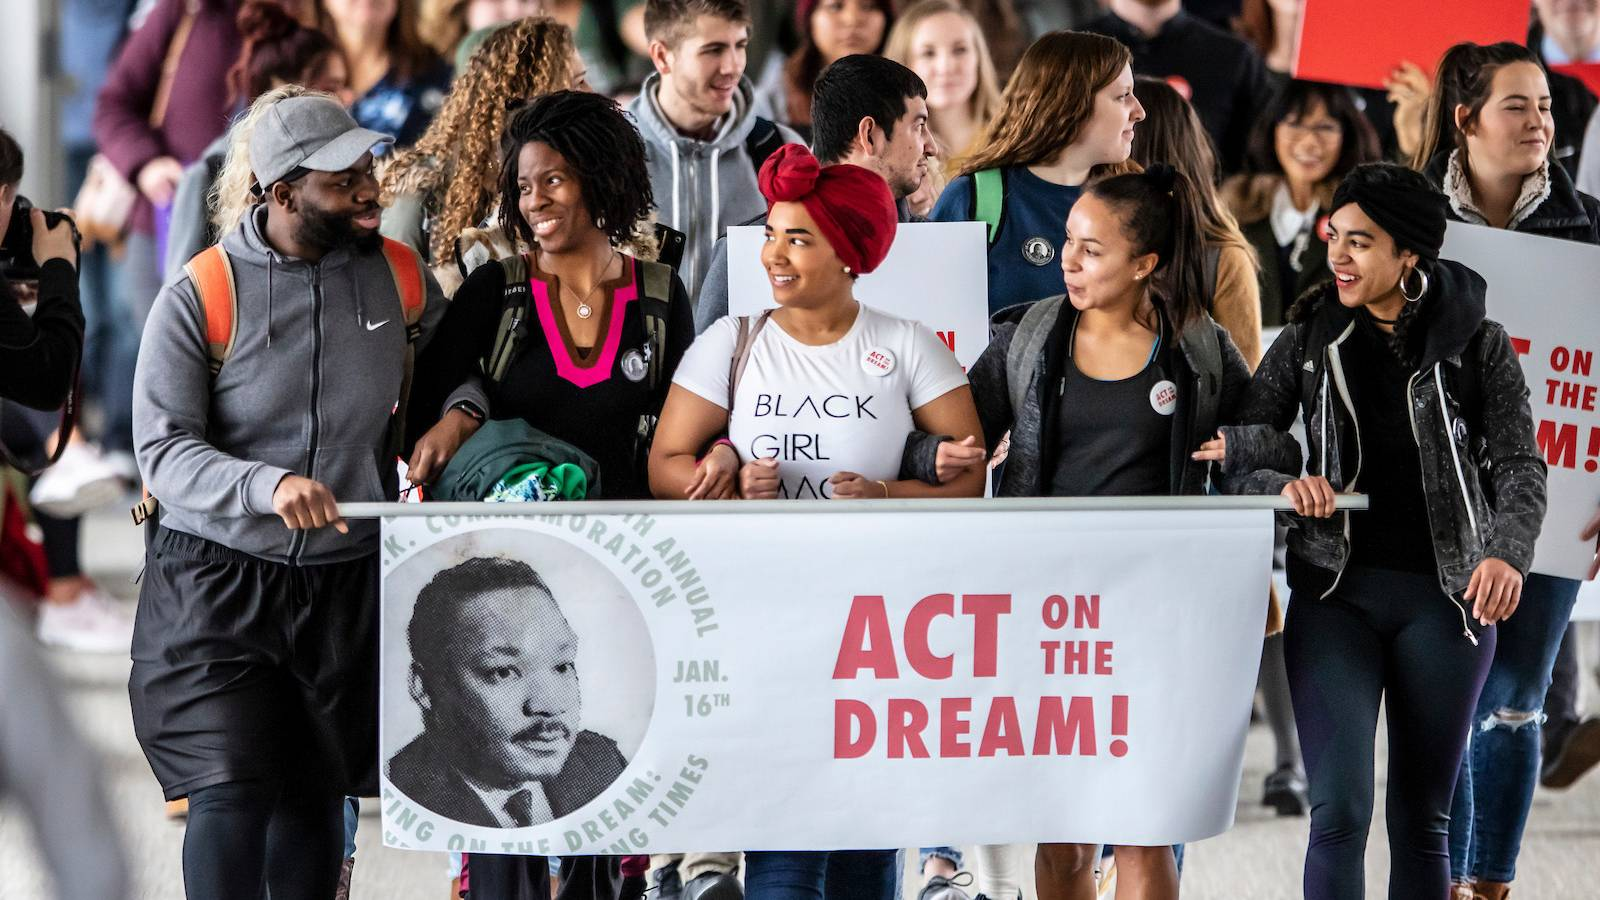 Students walk with banner commemoration Martin Luther King, Jr.